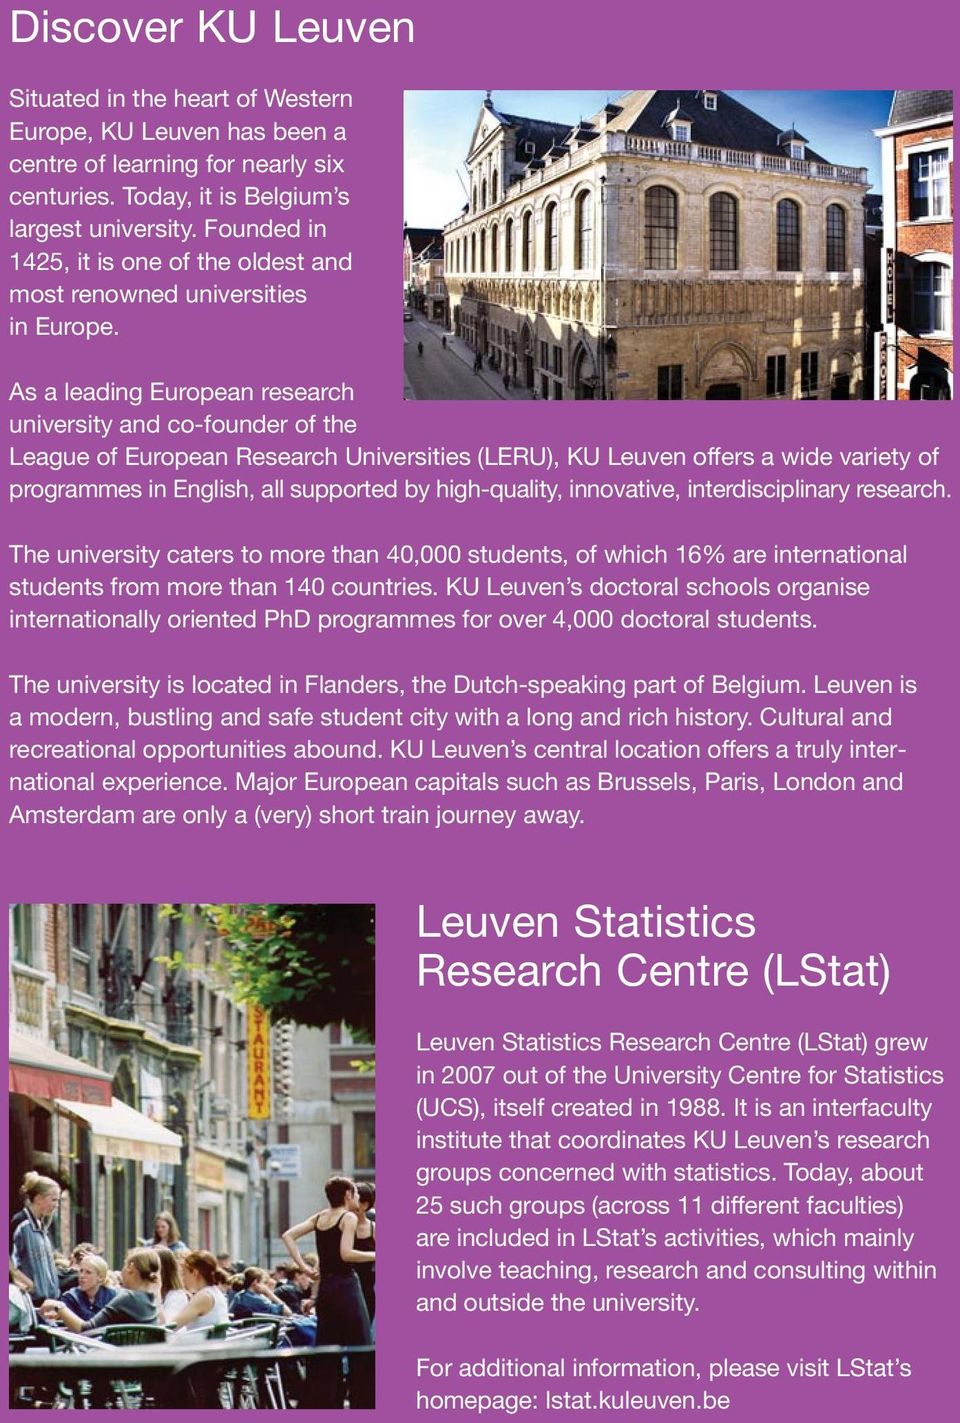 As a leading European research university and co-founder of the League of European Research Universities (LERU), KU Leuven offers a wide variety of programmes in English, all supported by